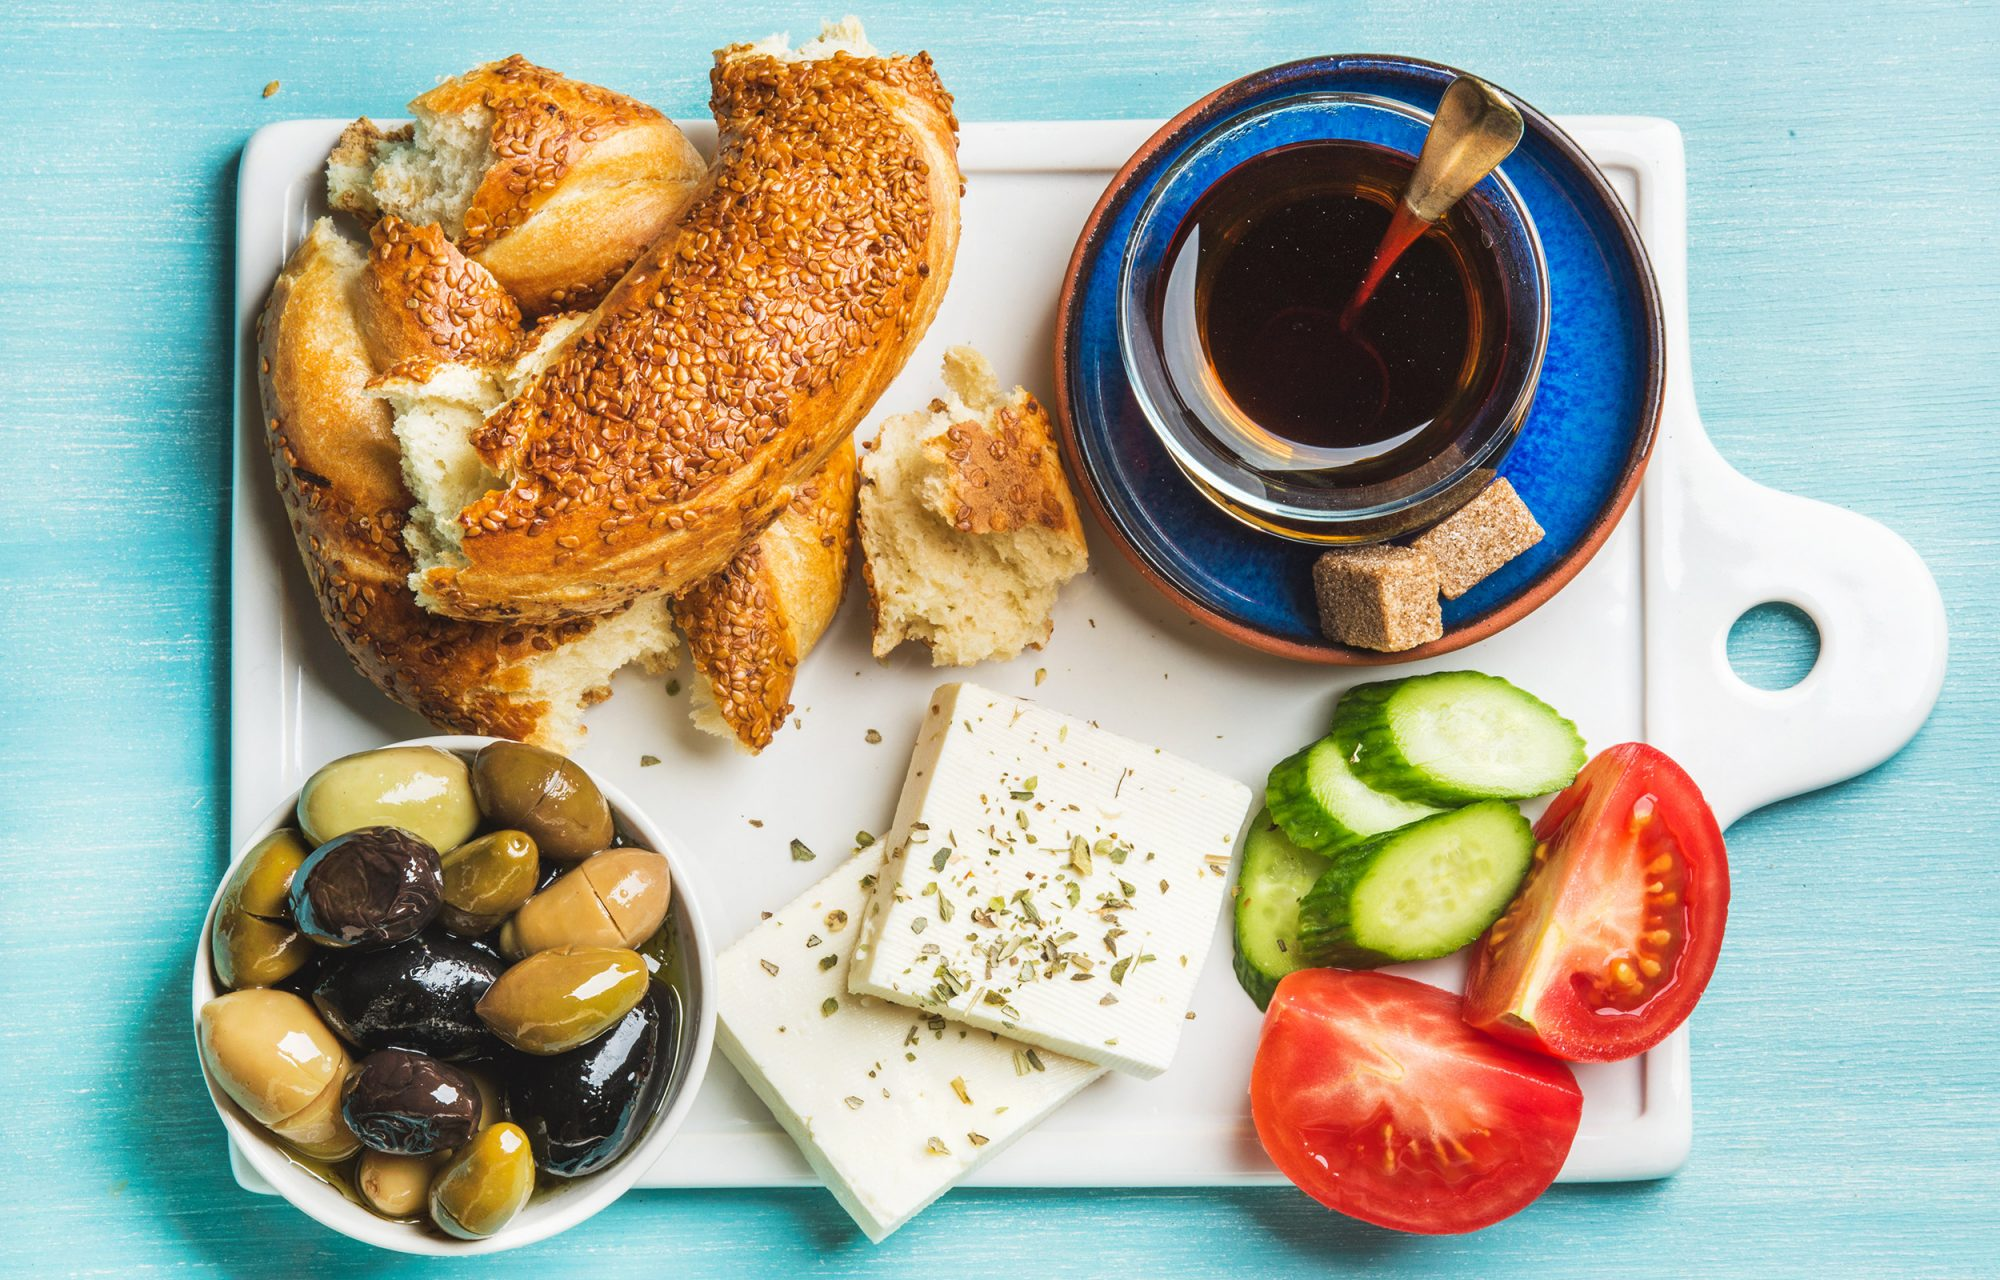 EC: 7 Mediterranean Diet Breakfasts to Make in 30 Minutes or Less